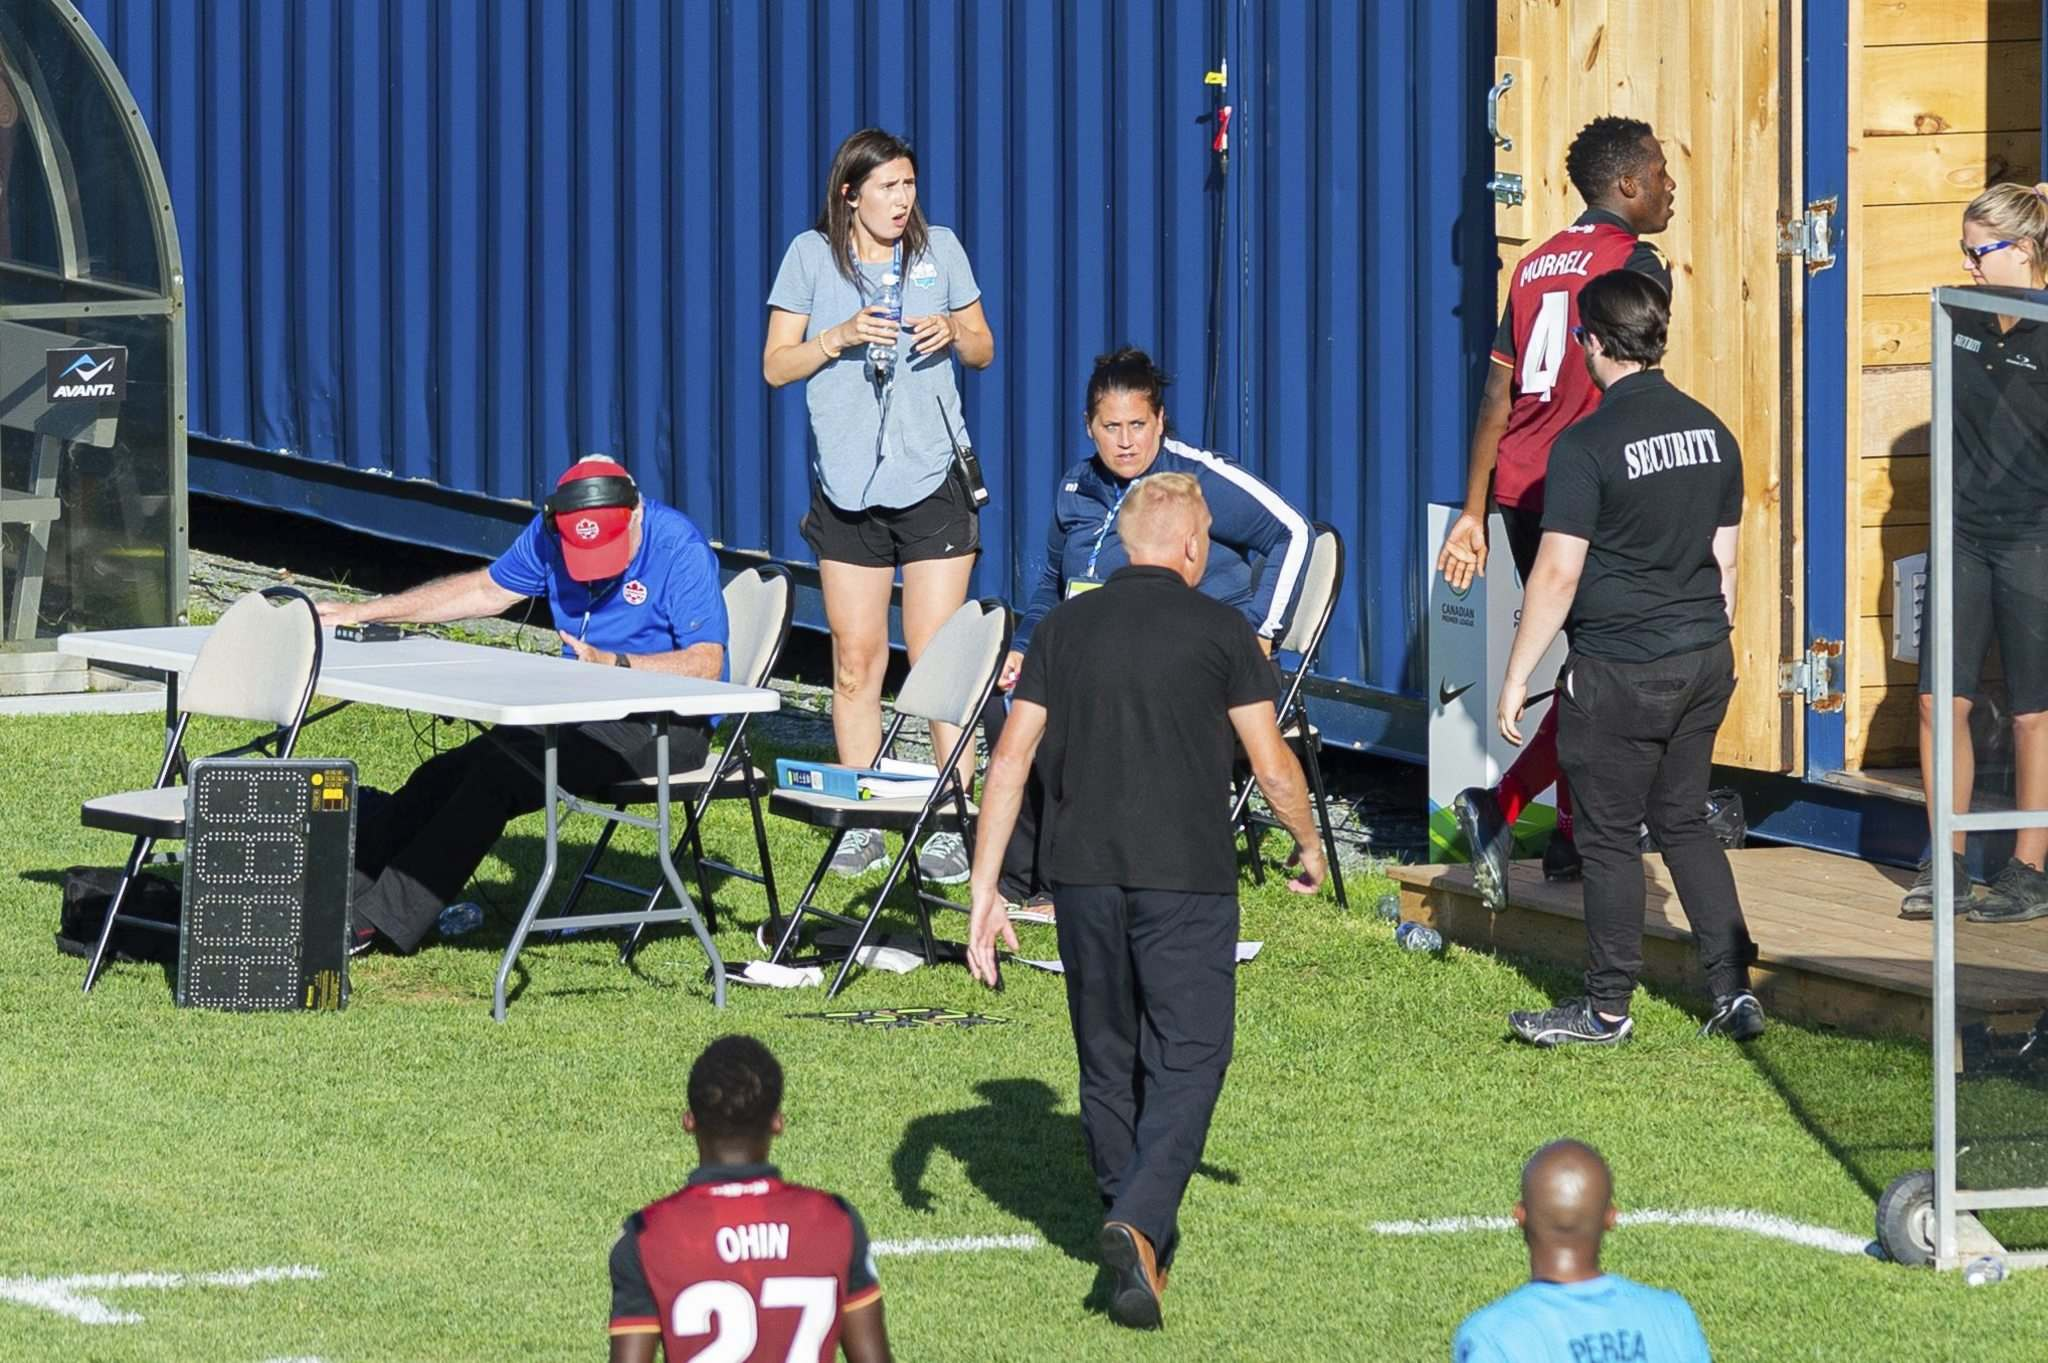 Murrell leaves the pitch after being ejected from the game by the referee Monday.